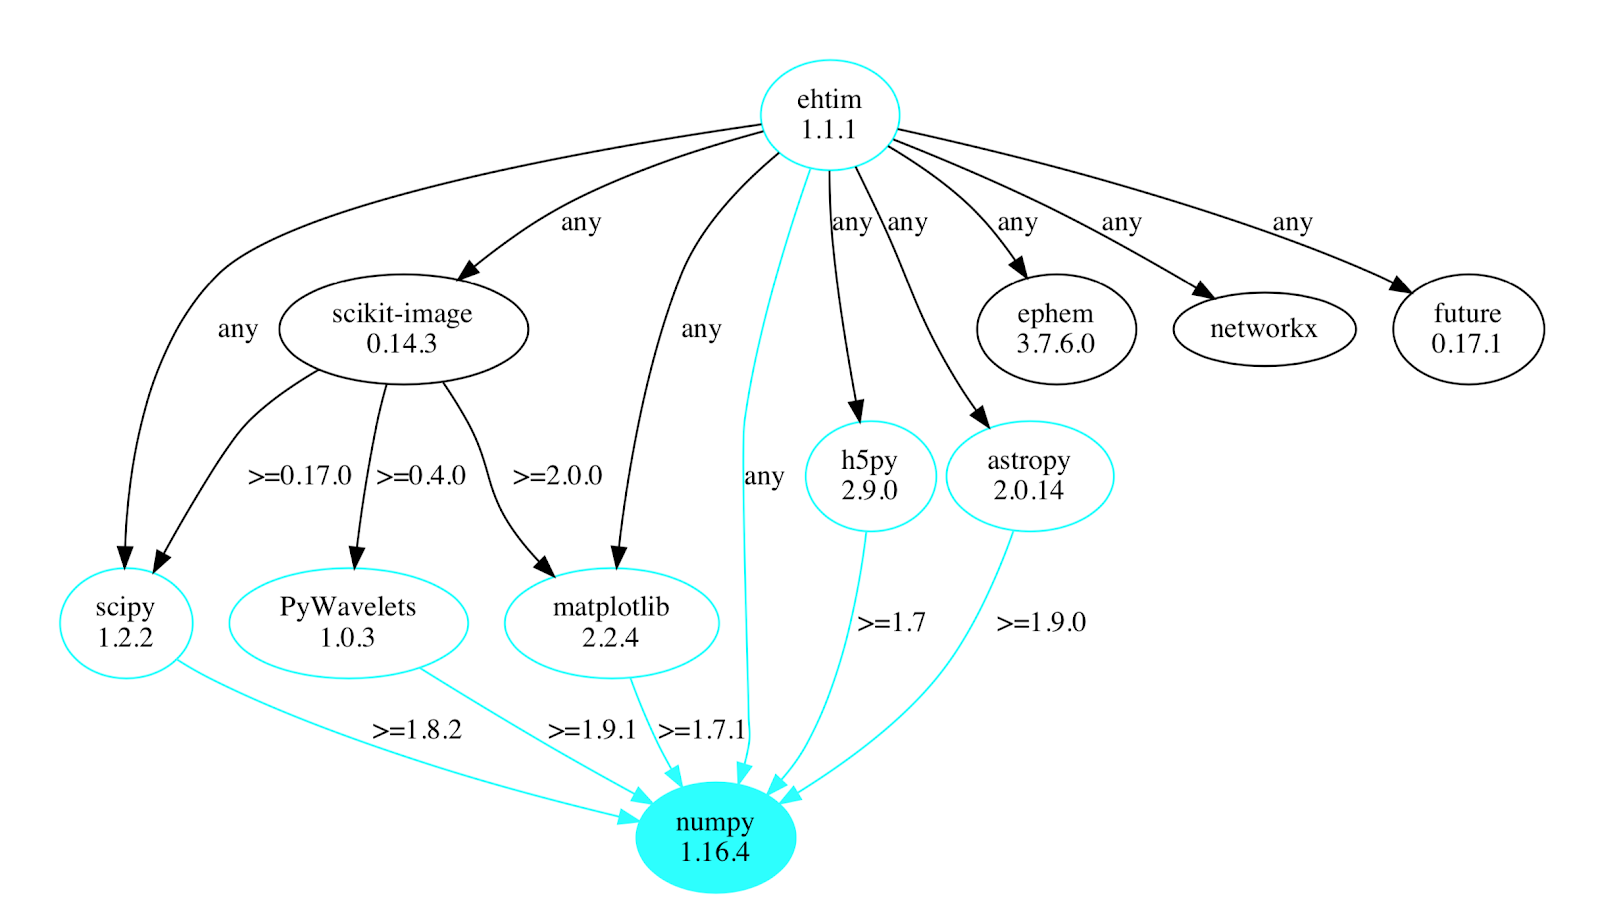 ehtim dependency map highlighting numpy